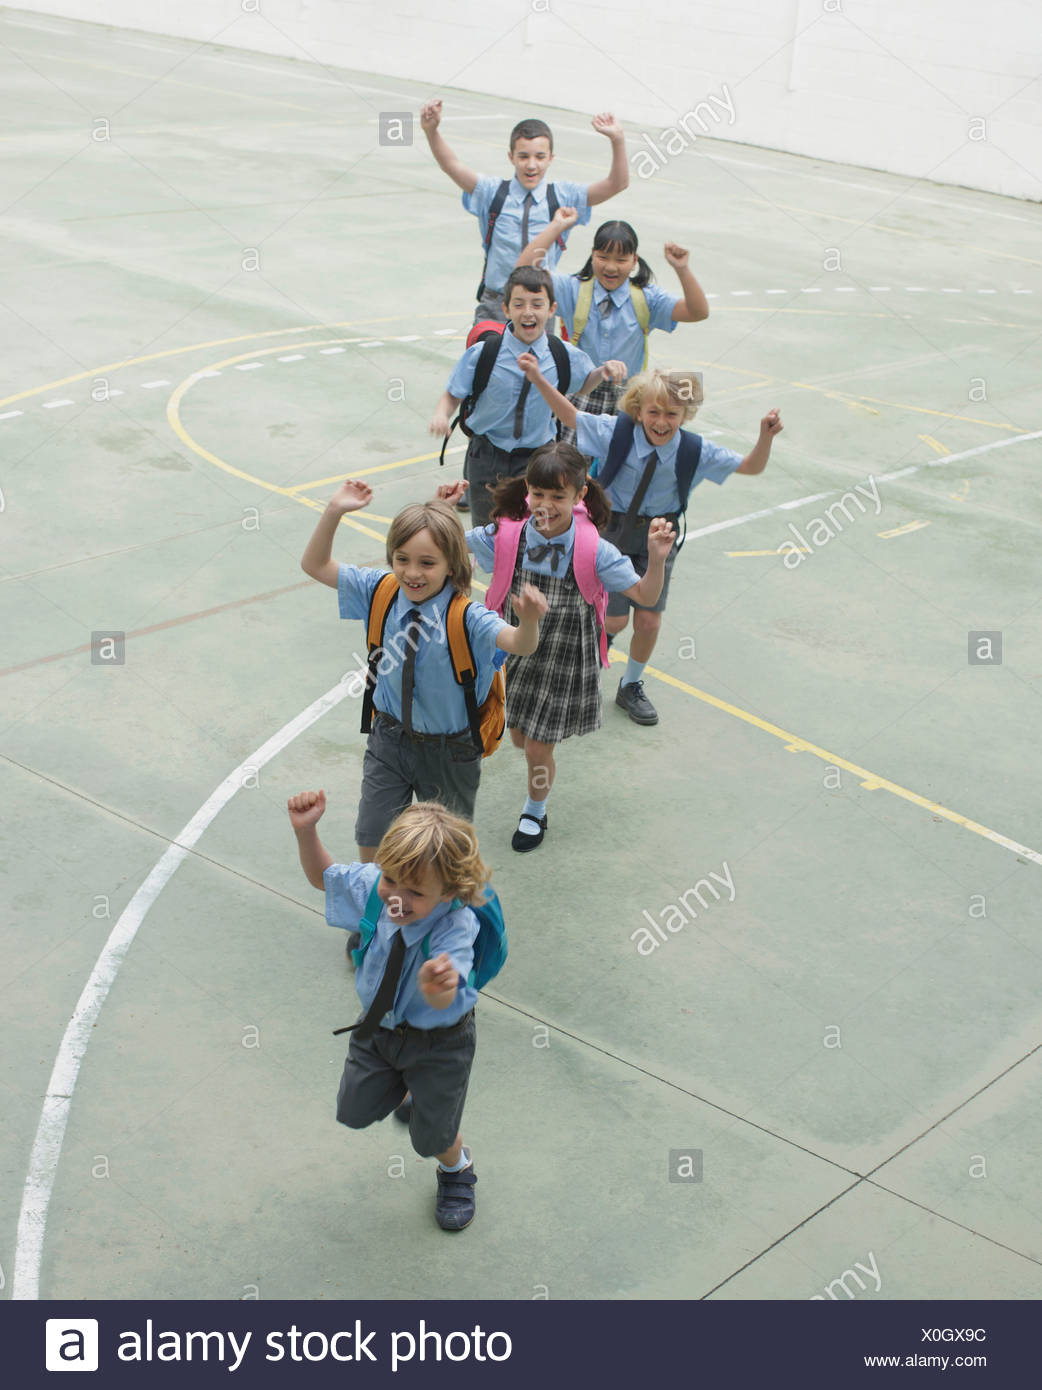 School children running in courtyard - Stock Image